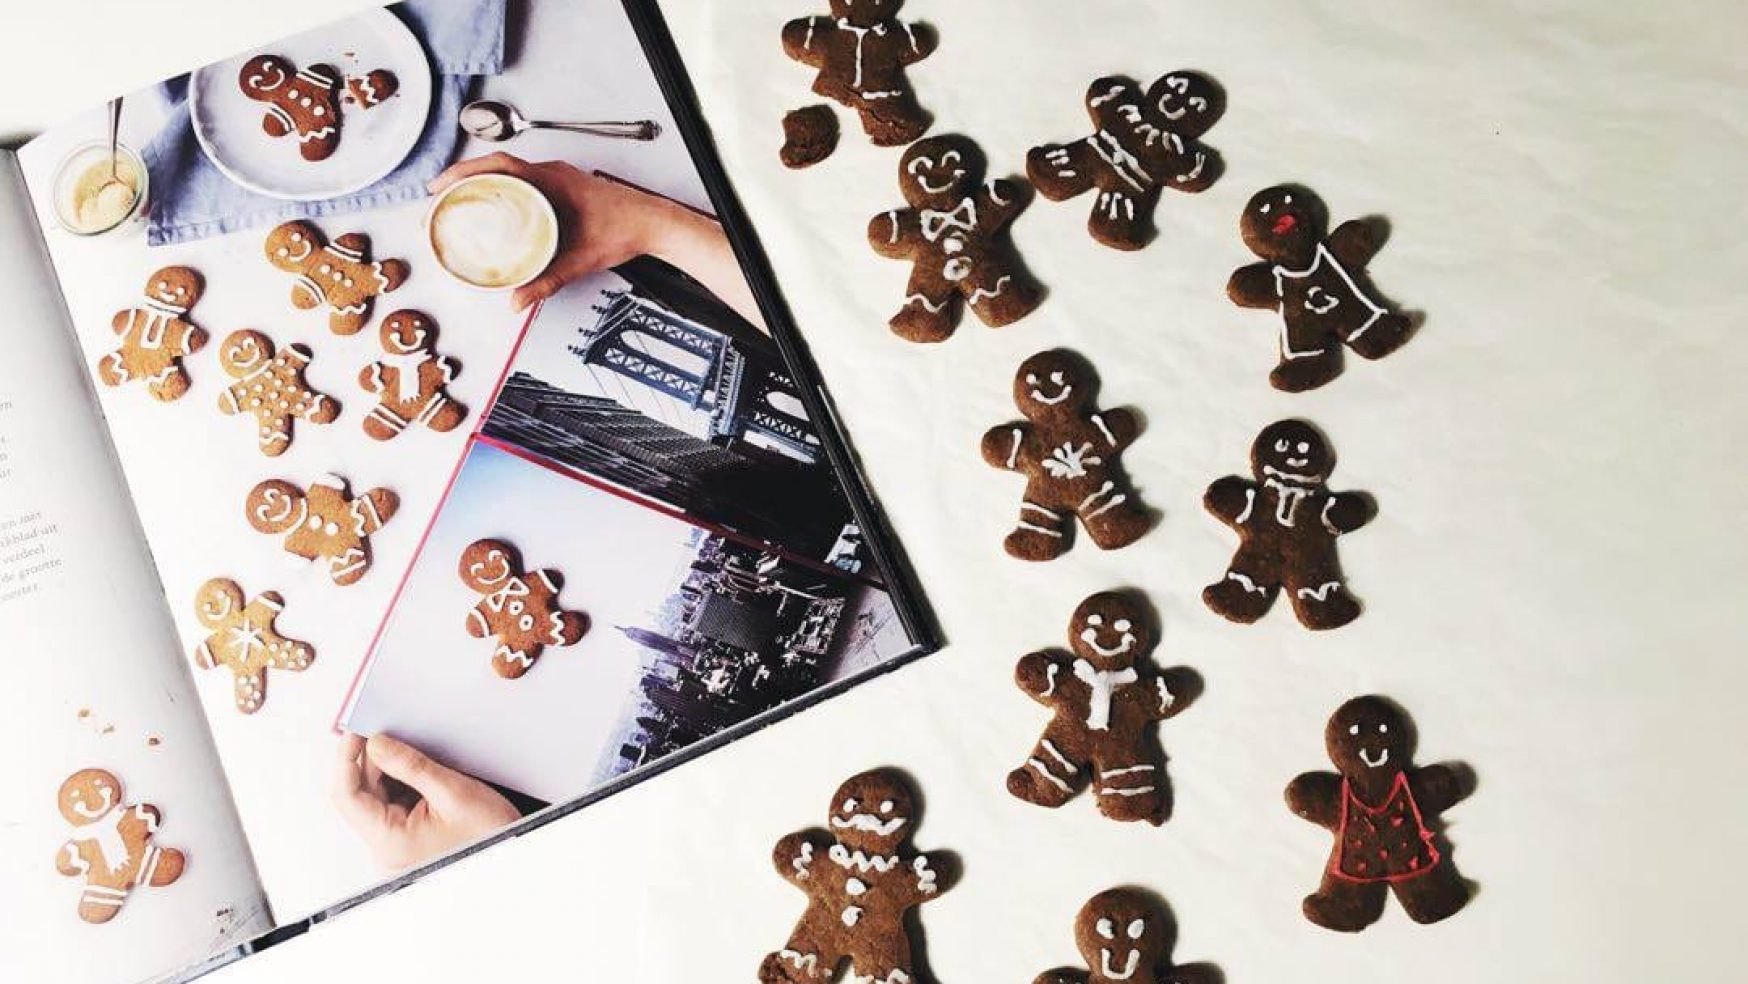 New York Kerstmis Bake off: Gingerbread Men